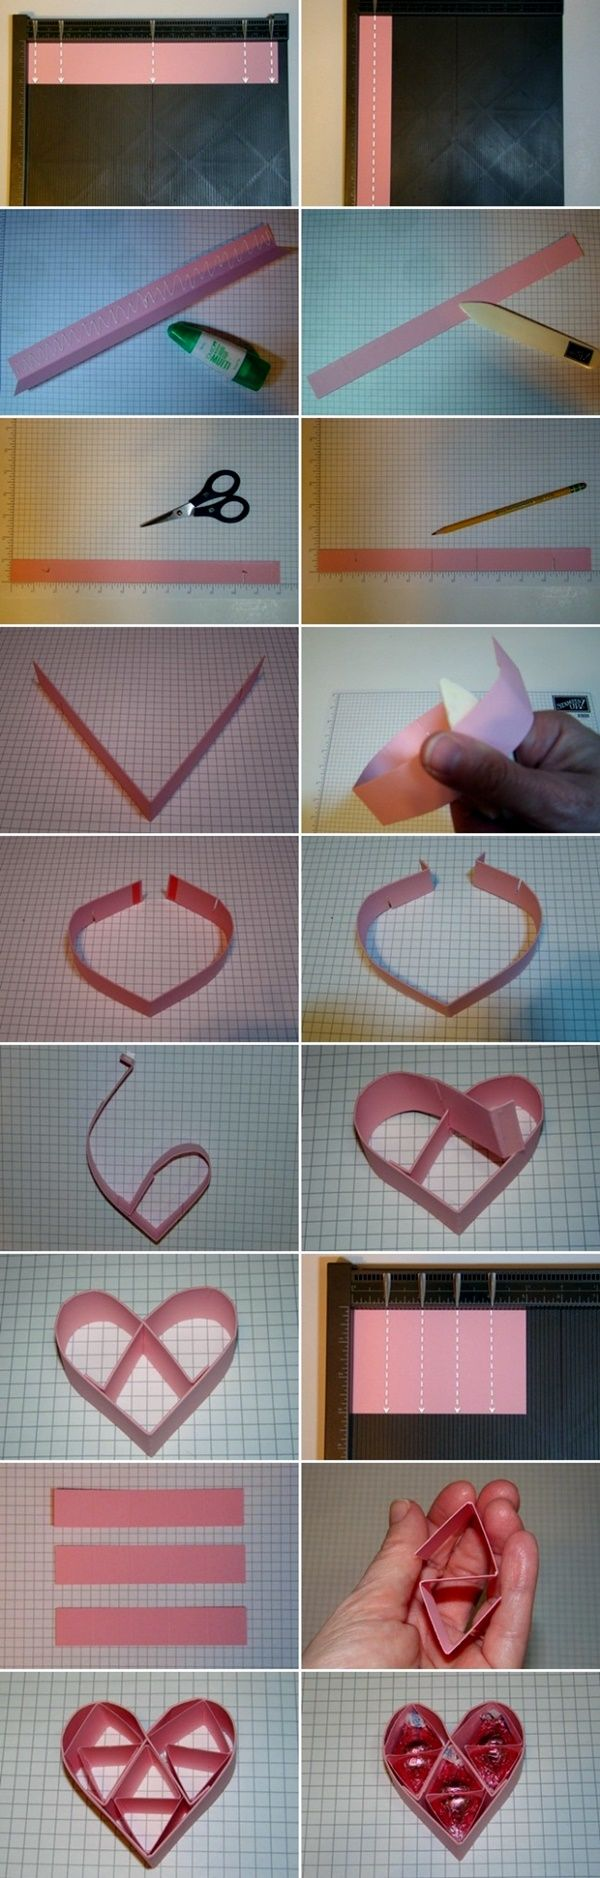 101 Homemade Valentines Day Ideas For Him Thatu0027re Really CUTE